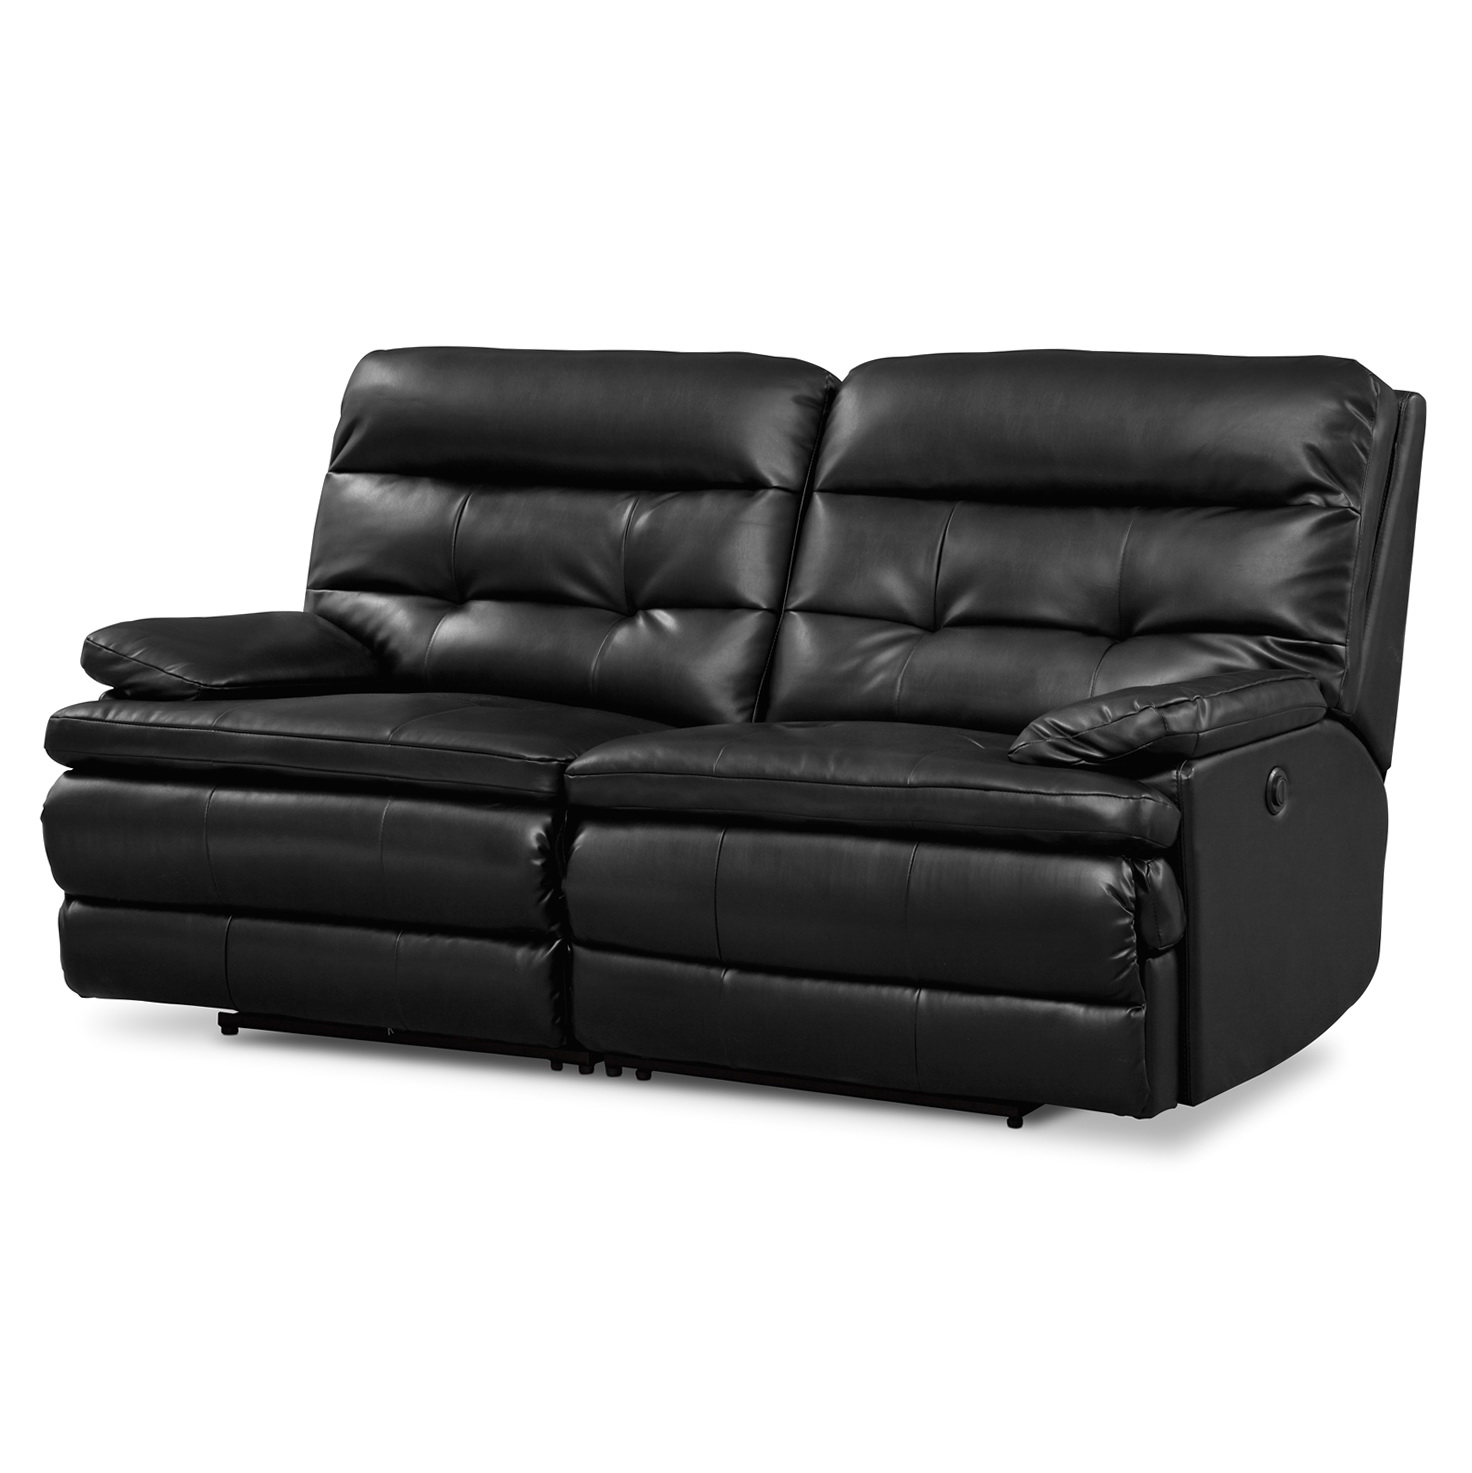 Leather Power Reclining Sofa At Costco: Power Reclining Loveseat Costco